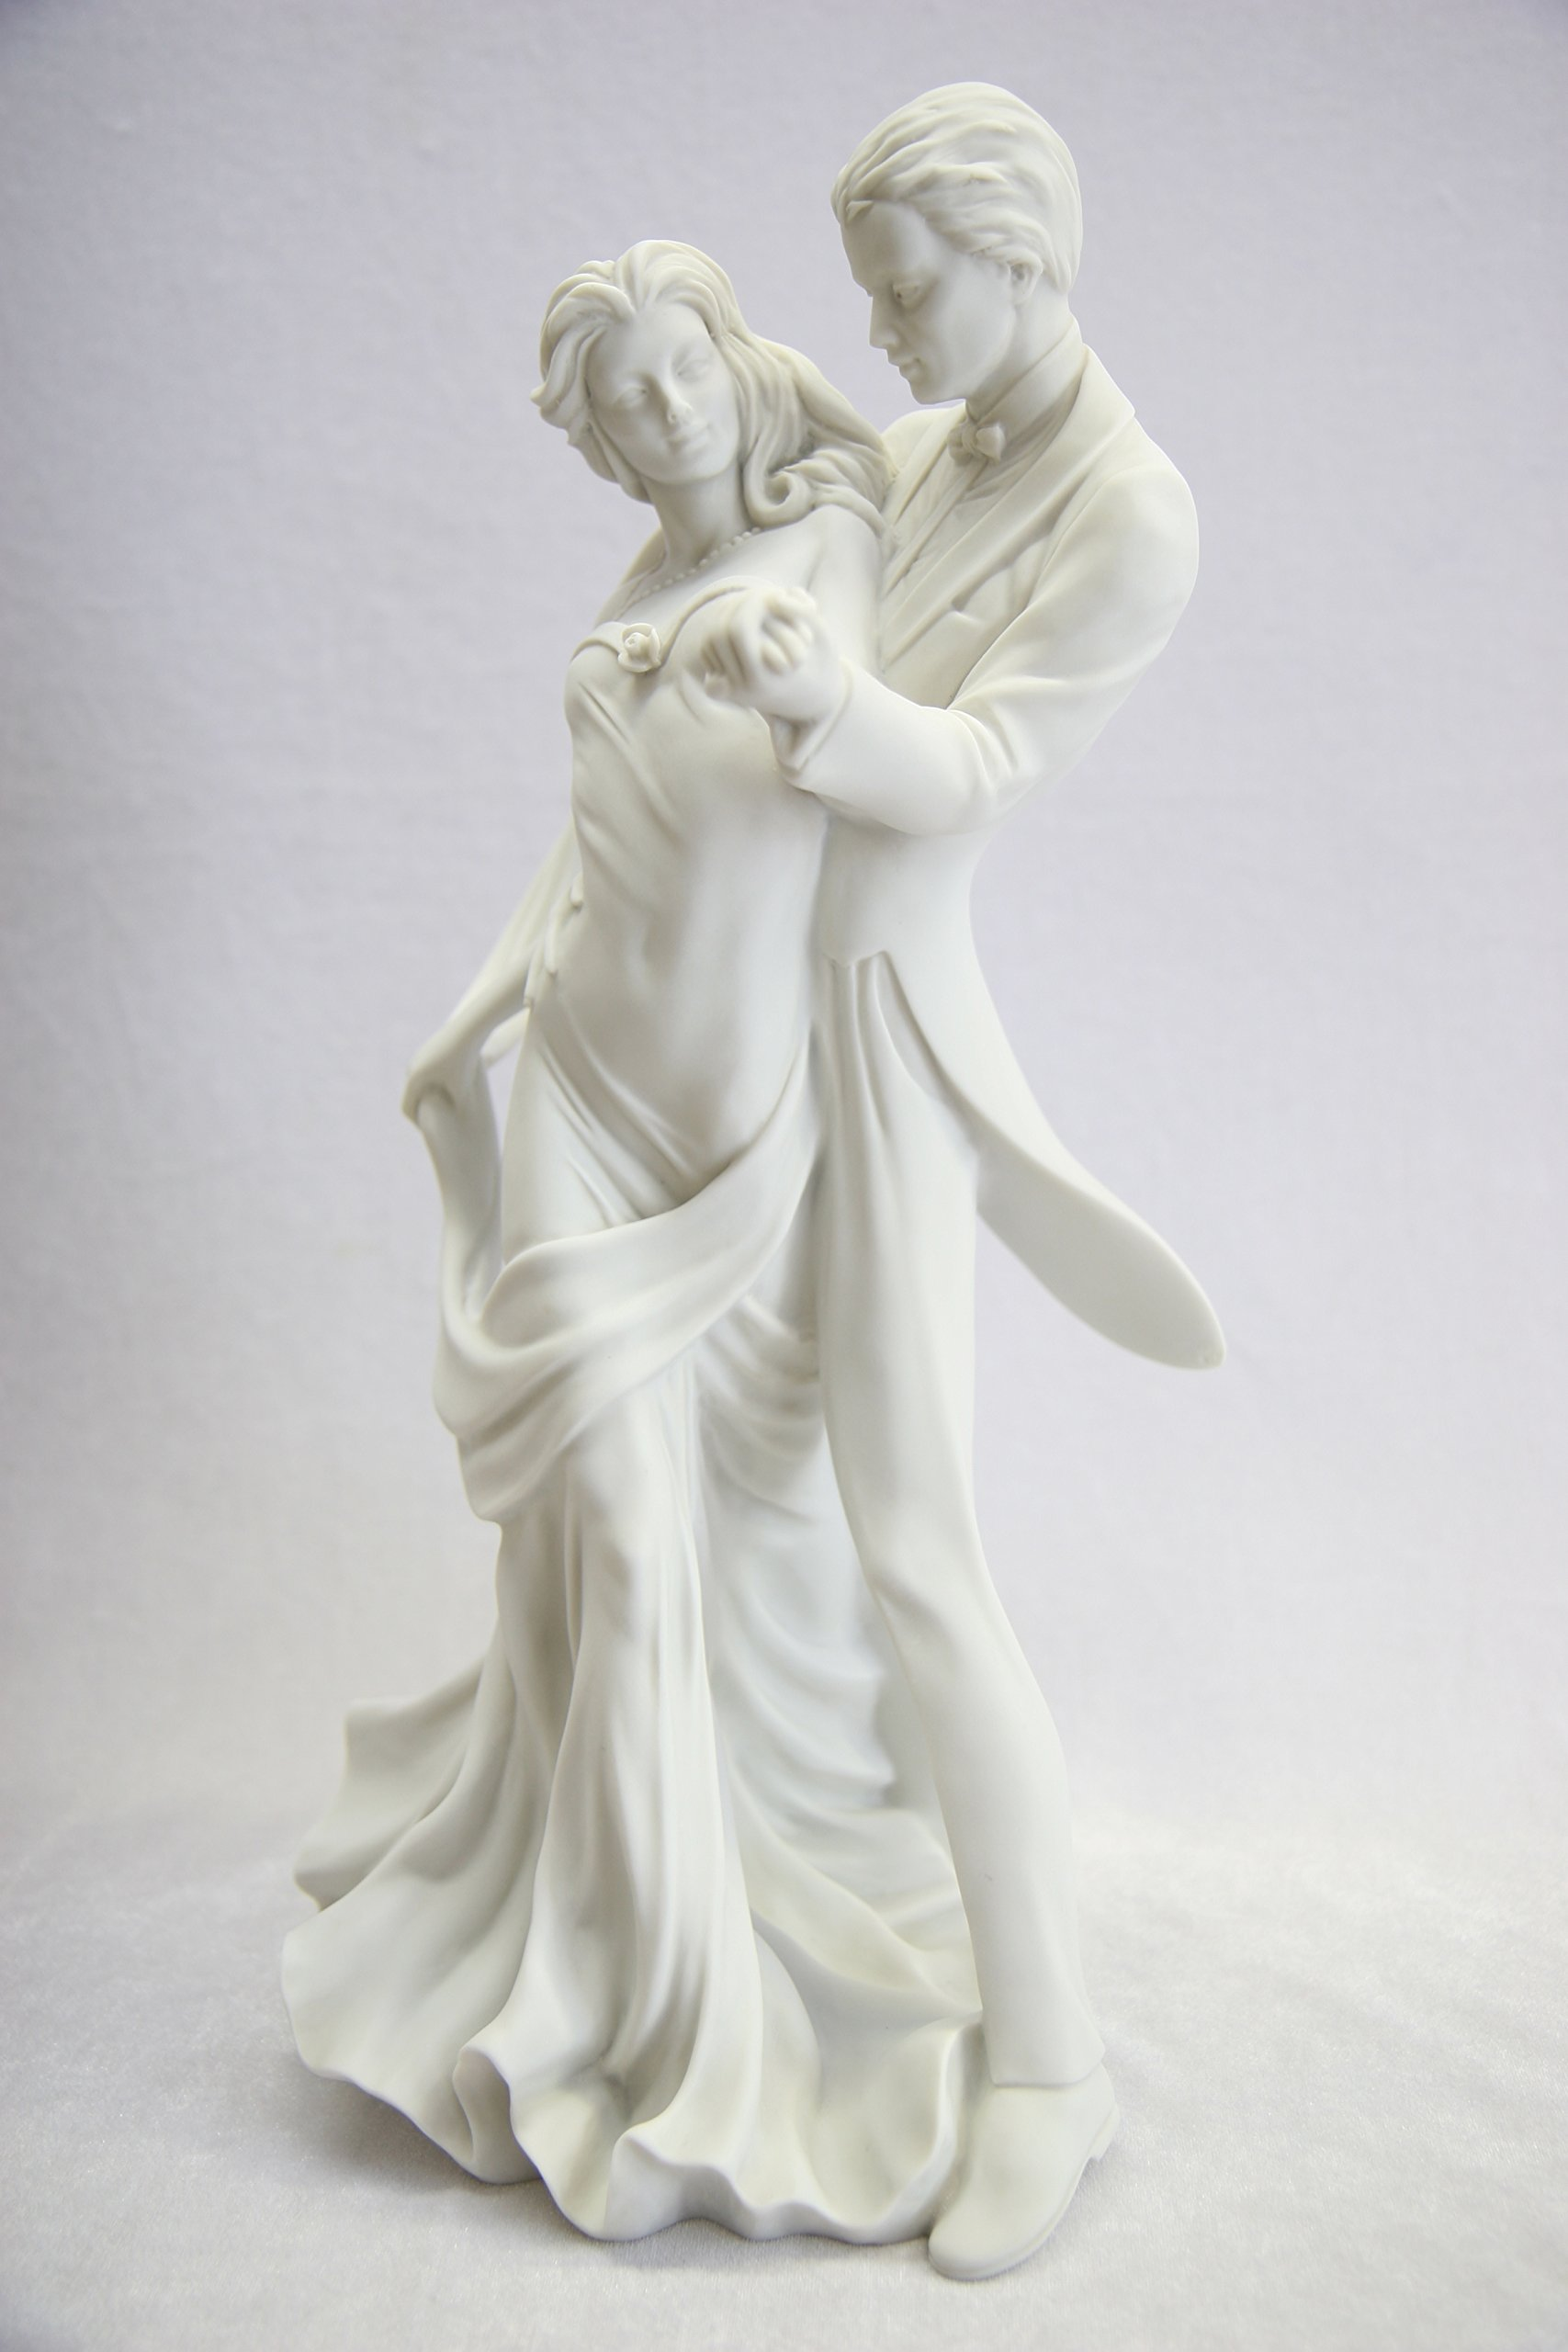 15.5'' Romantic Couple of Dancer Dance Statue Sculpture Figurine By Vittoria Collection Made in Italy by Vittoria Collection (Image #3)